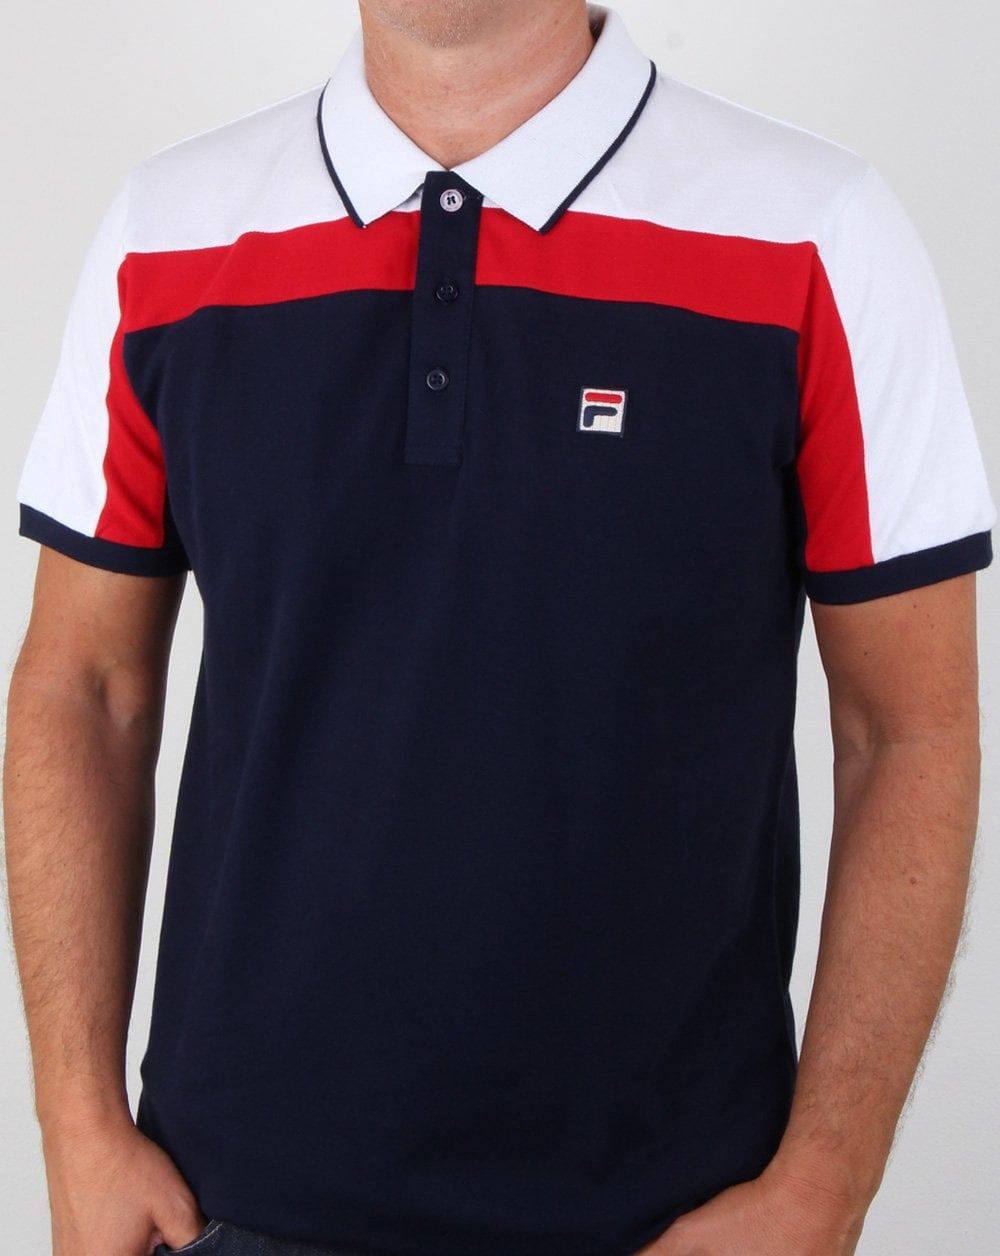 45d270cd Fila Vintage Spencer Polo Shirt Navy/white/red, Mens, POlo, Cotton